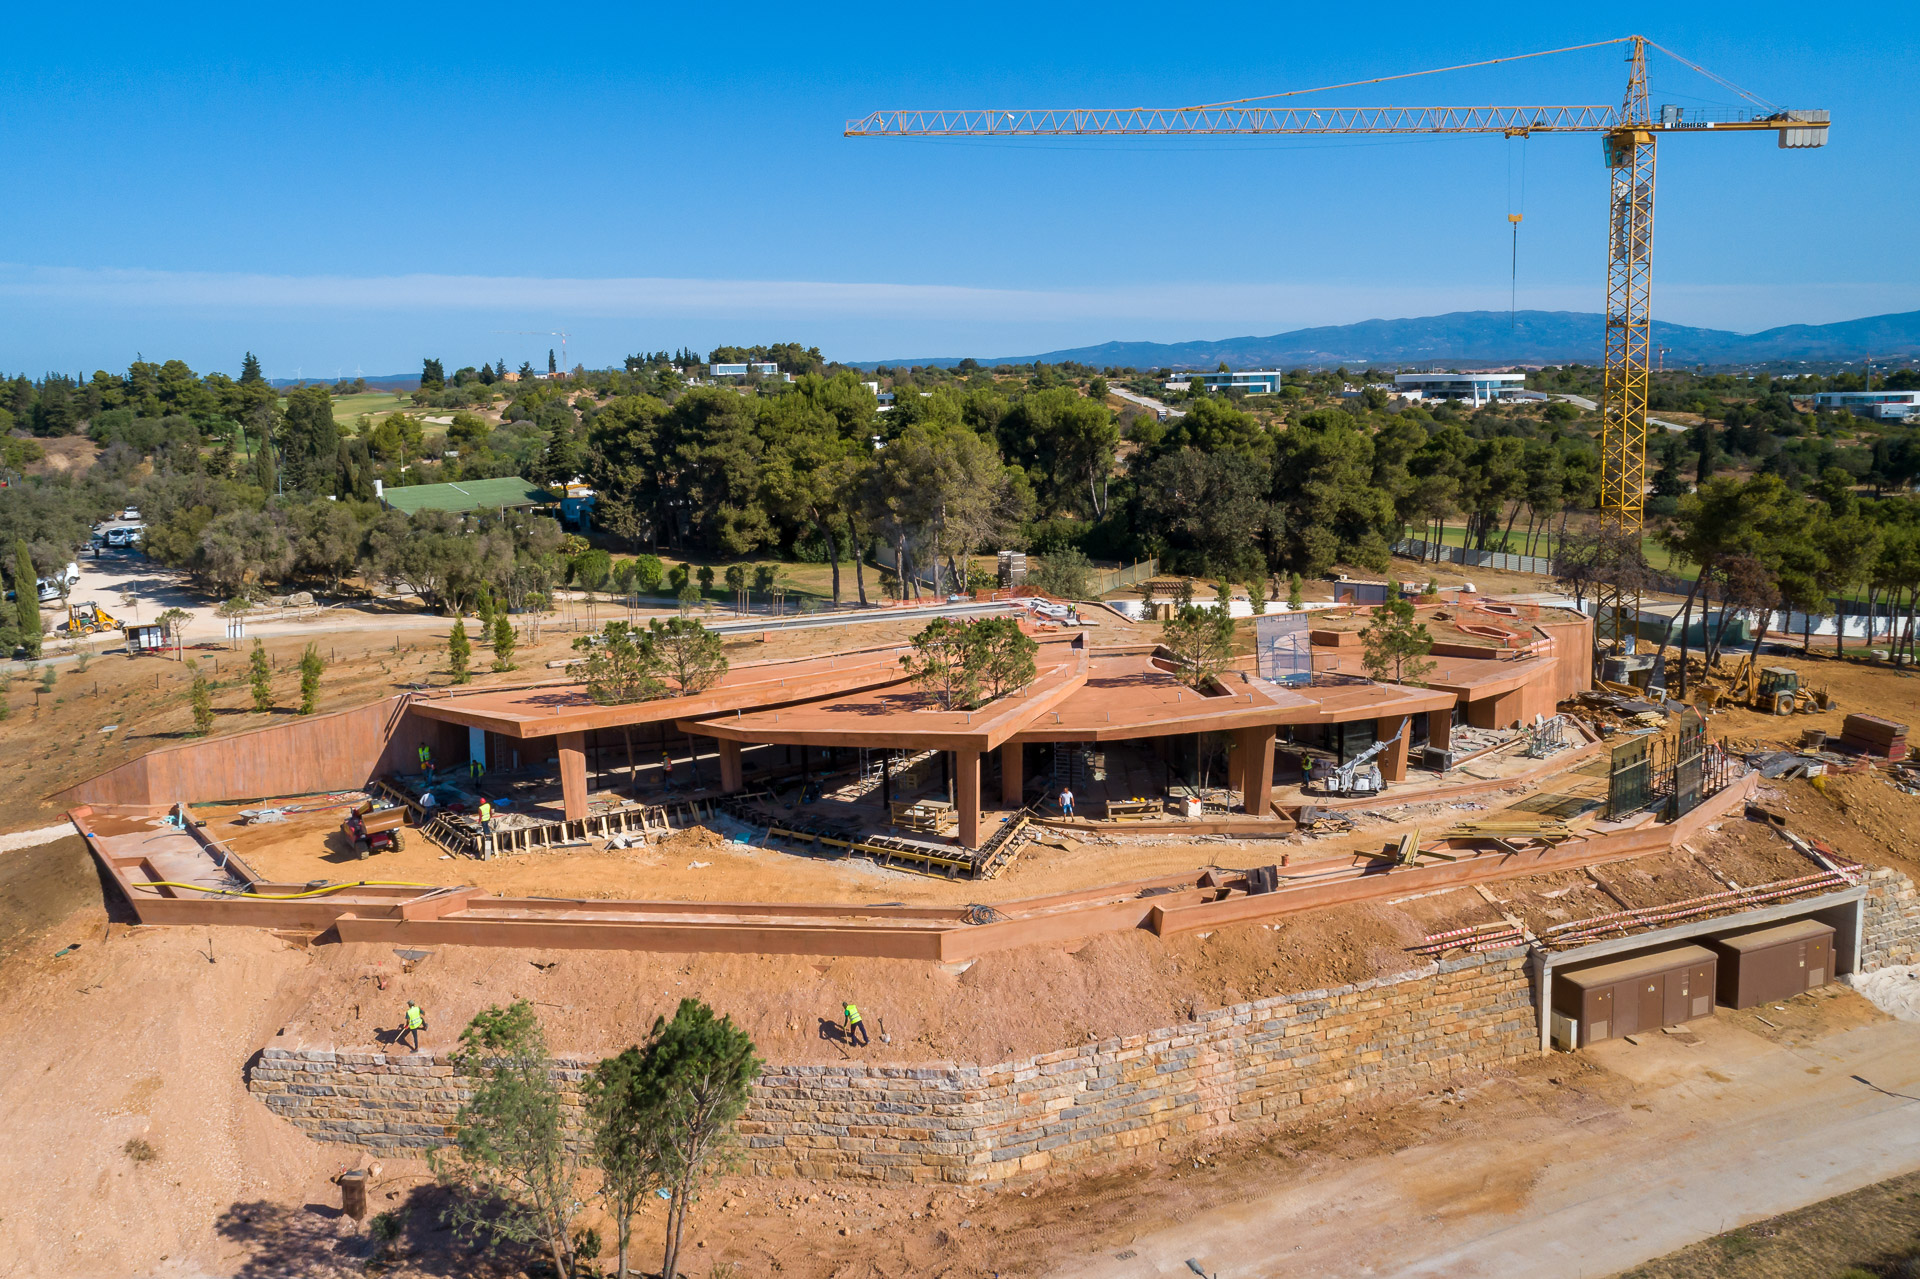 Palmares ClubHouse under construction